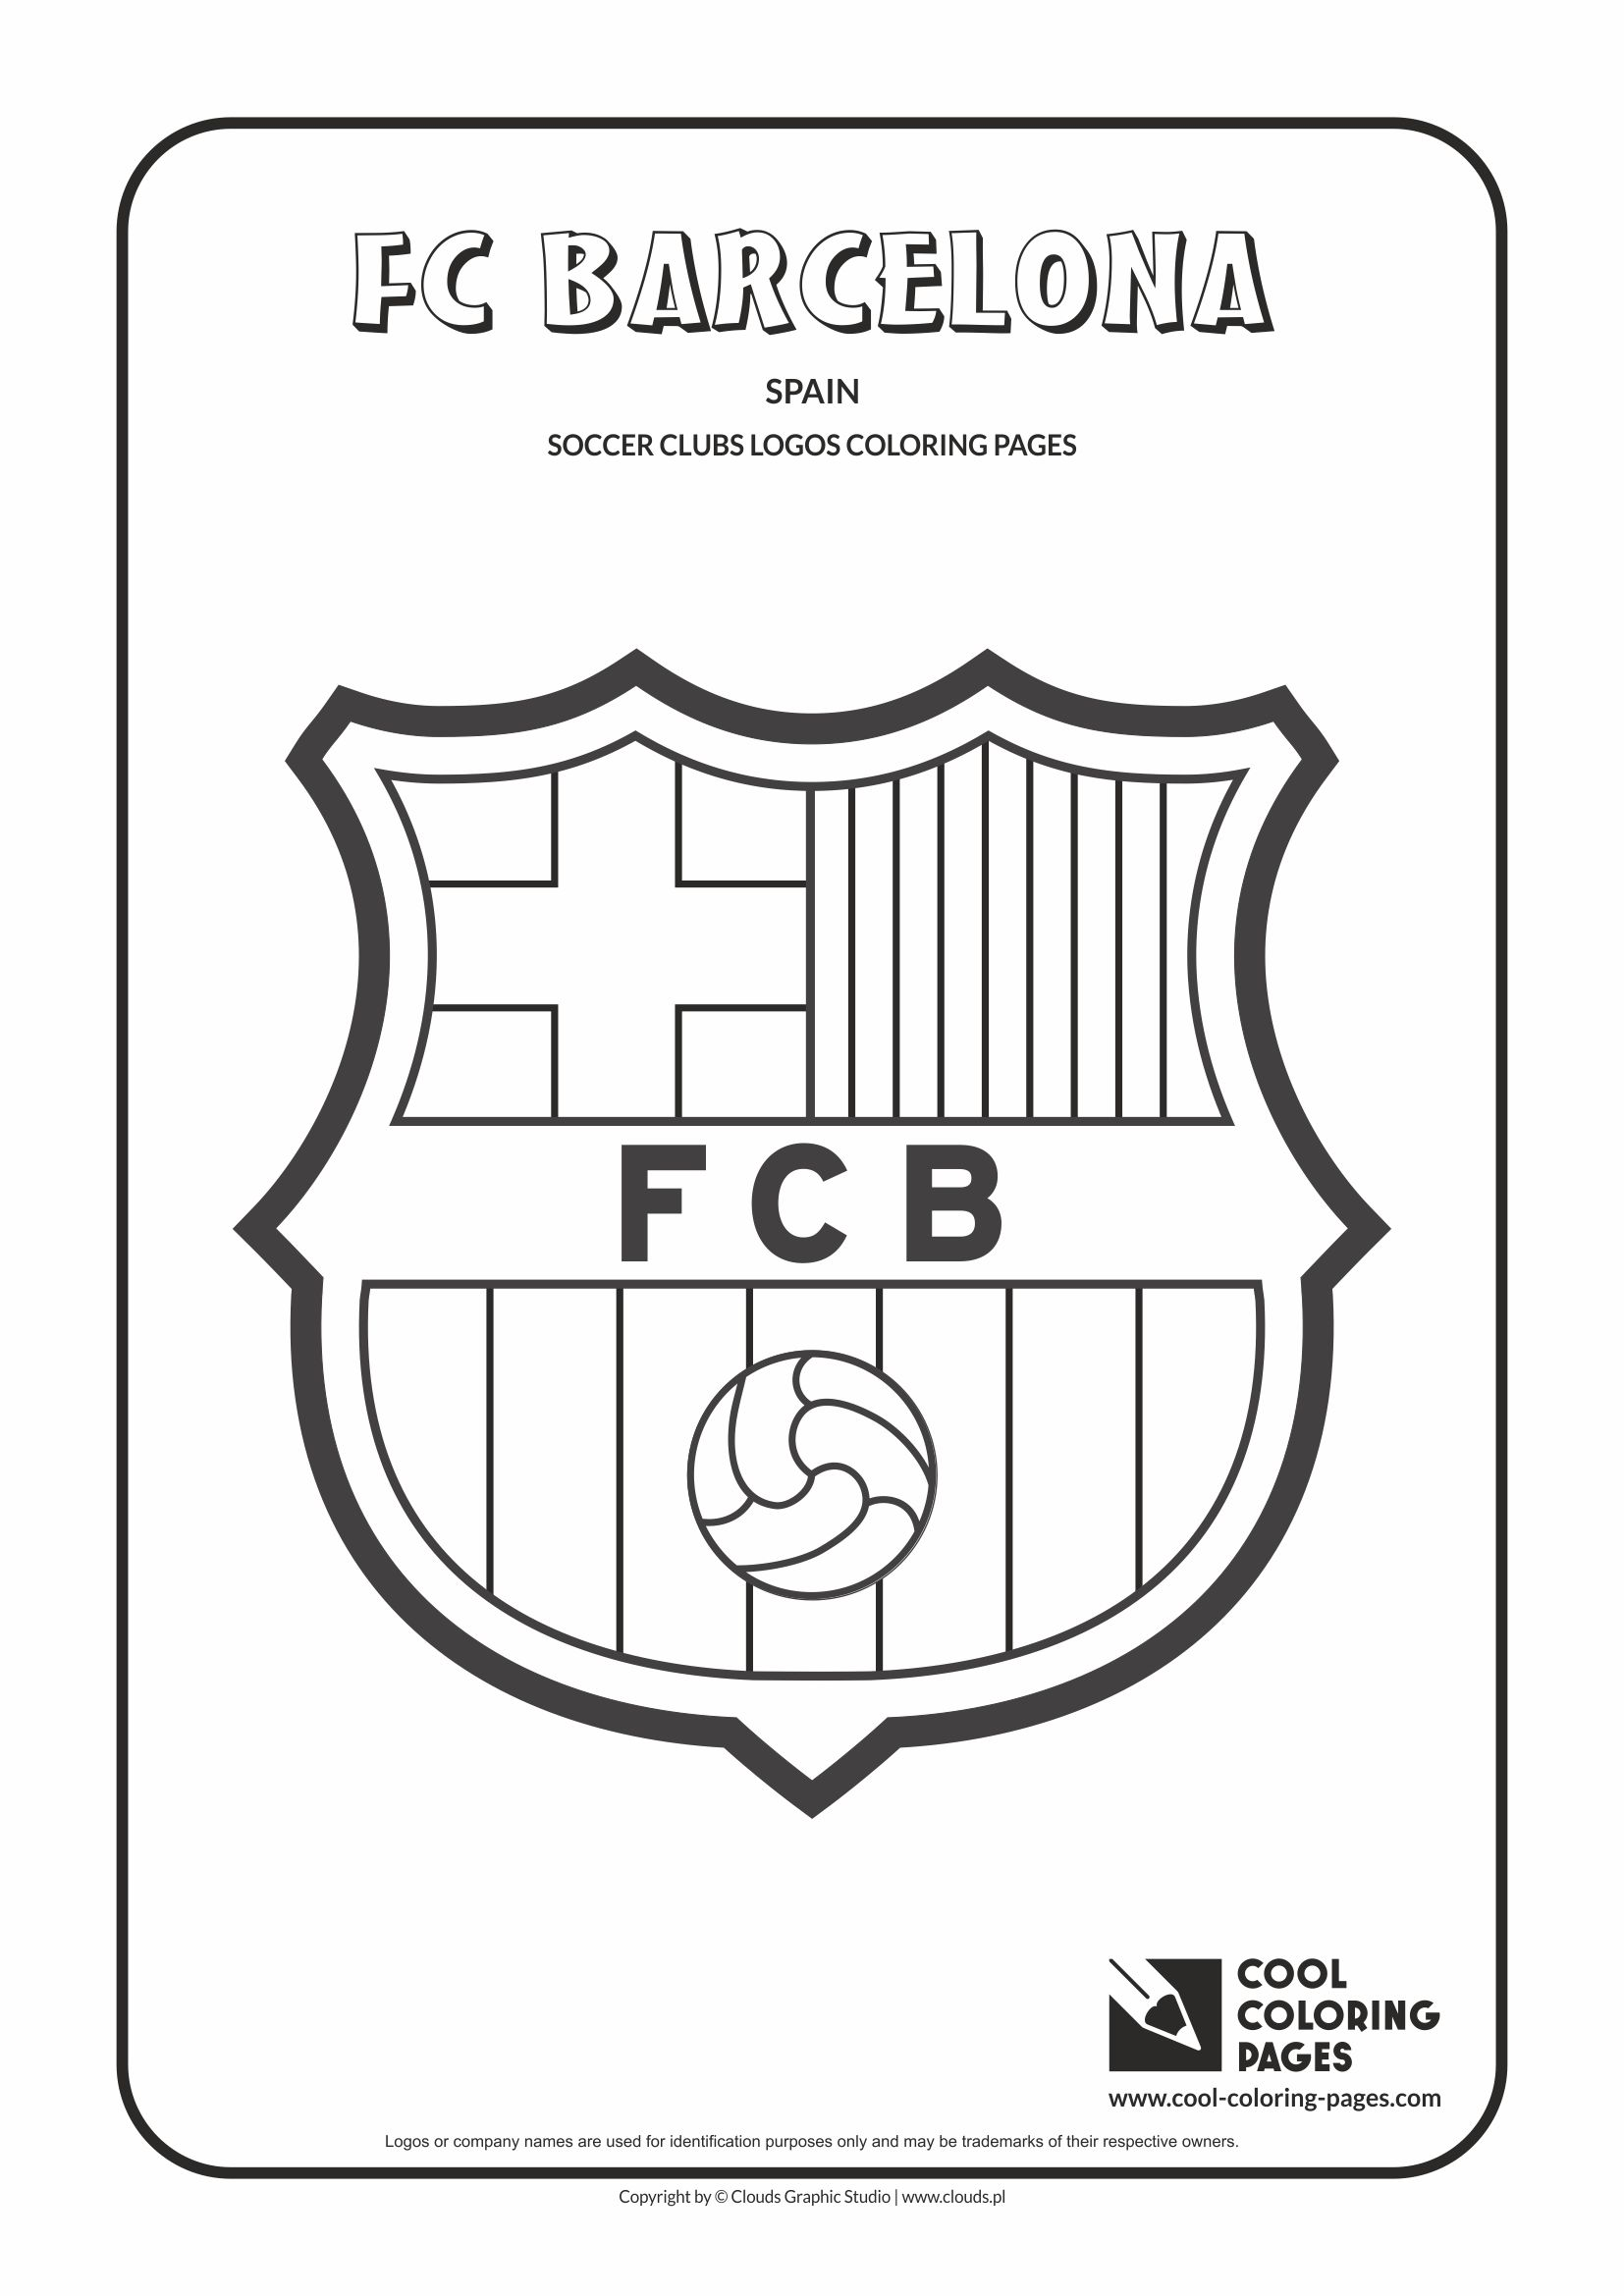 fc barcelona logo coloring pages cool coloring pages